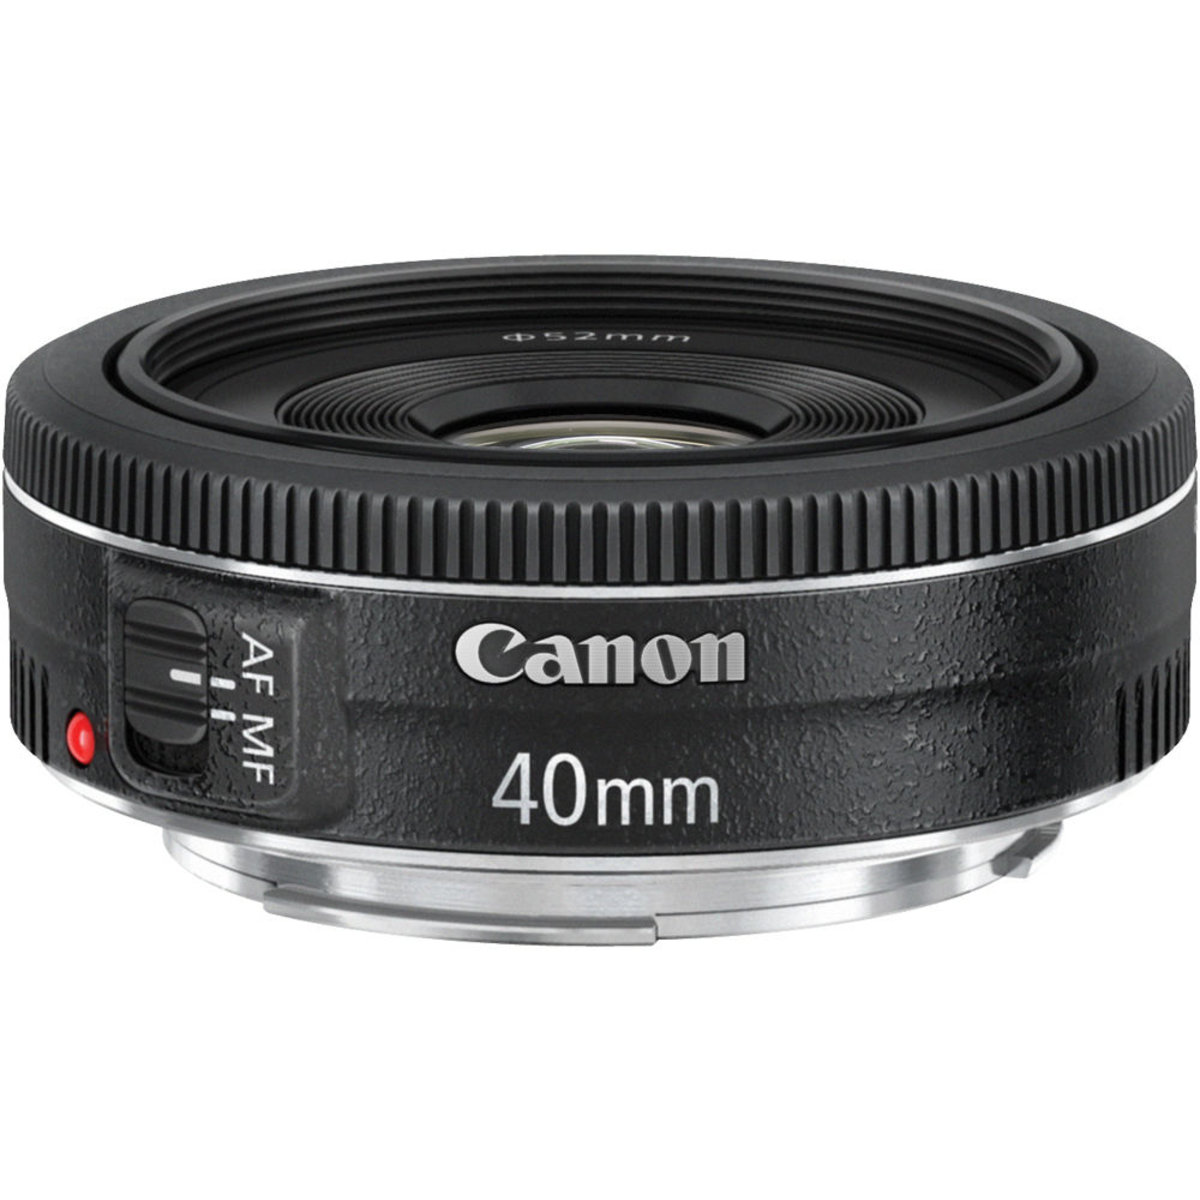 EF 40mm f/2.8 STM Lens - [Black] (Parallel imported)